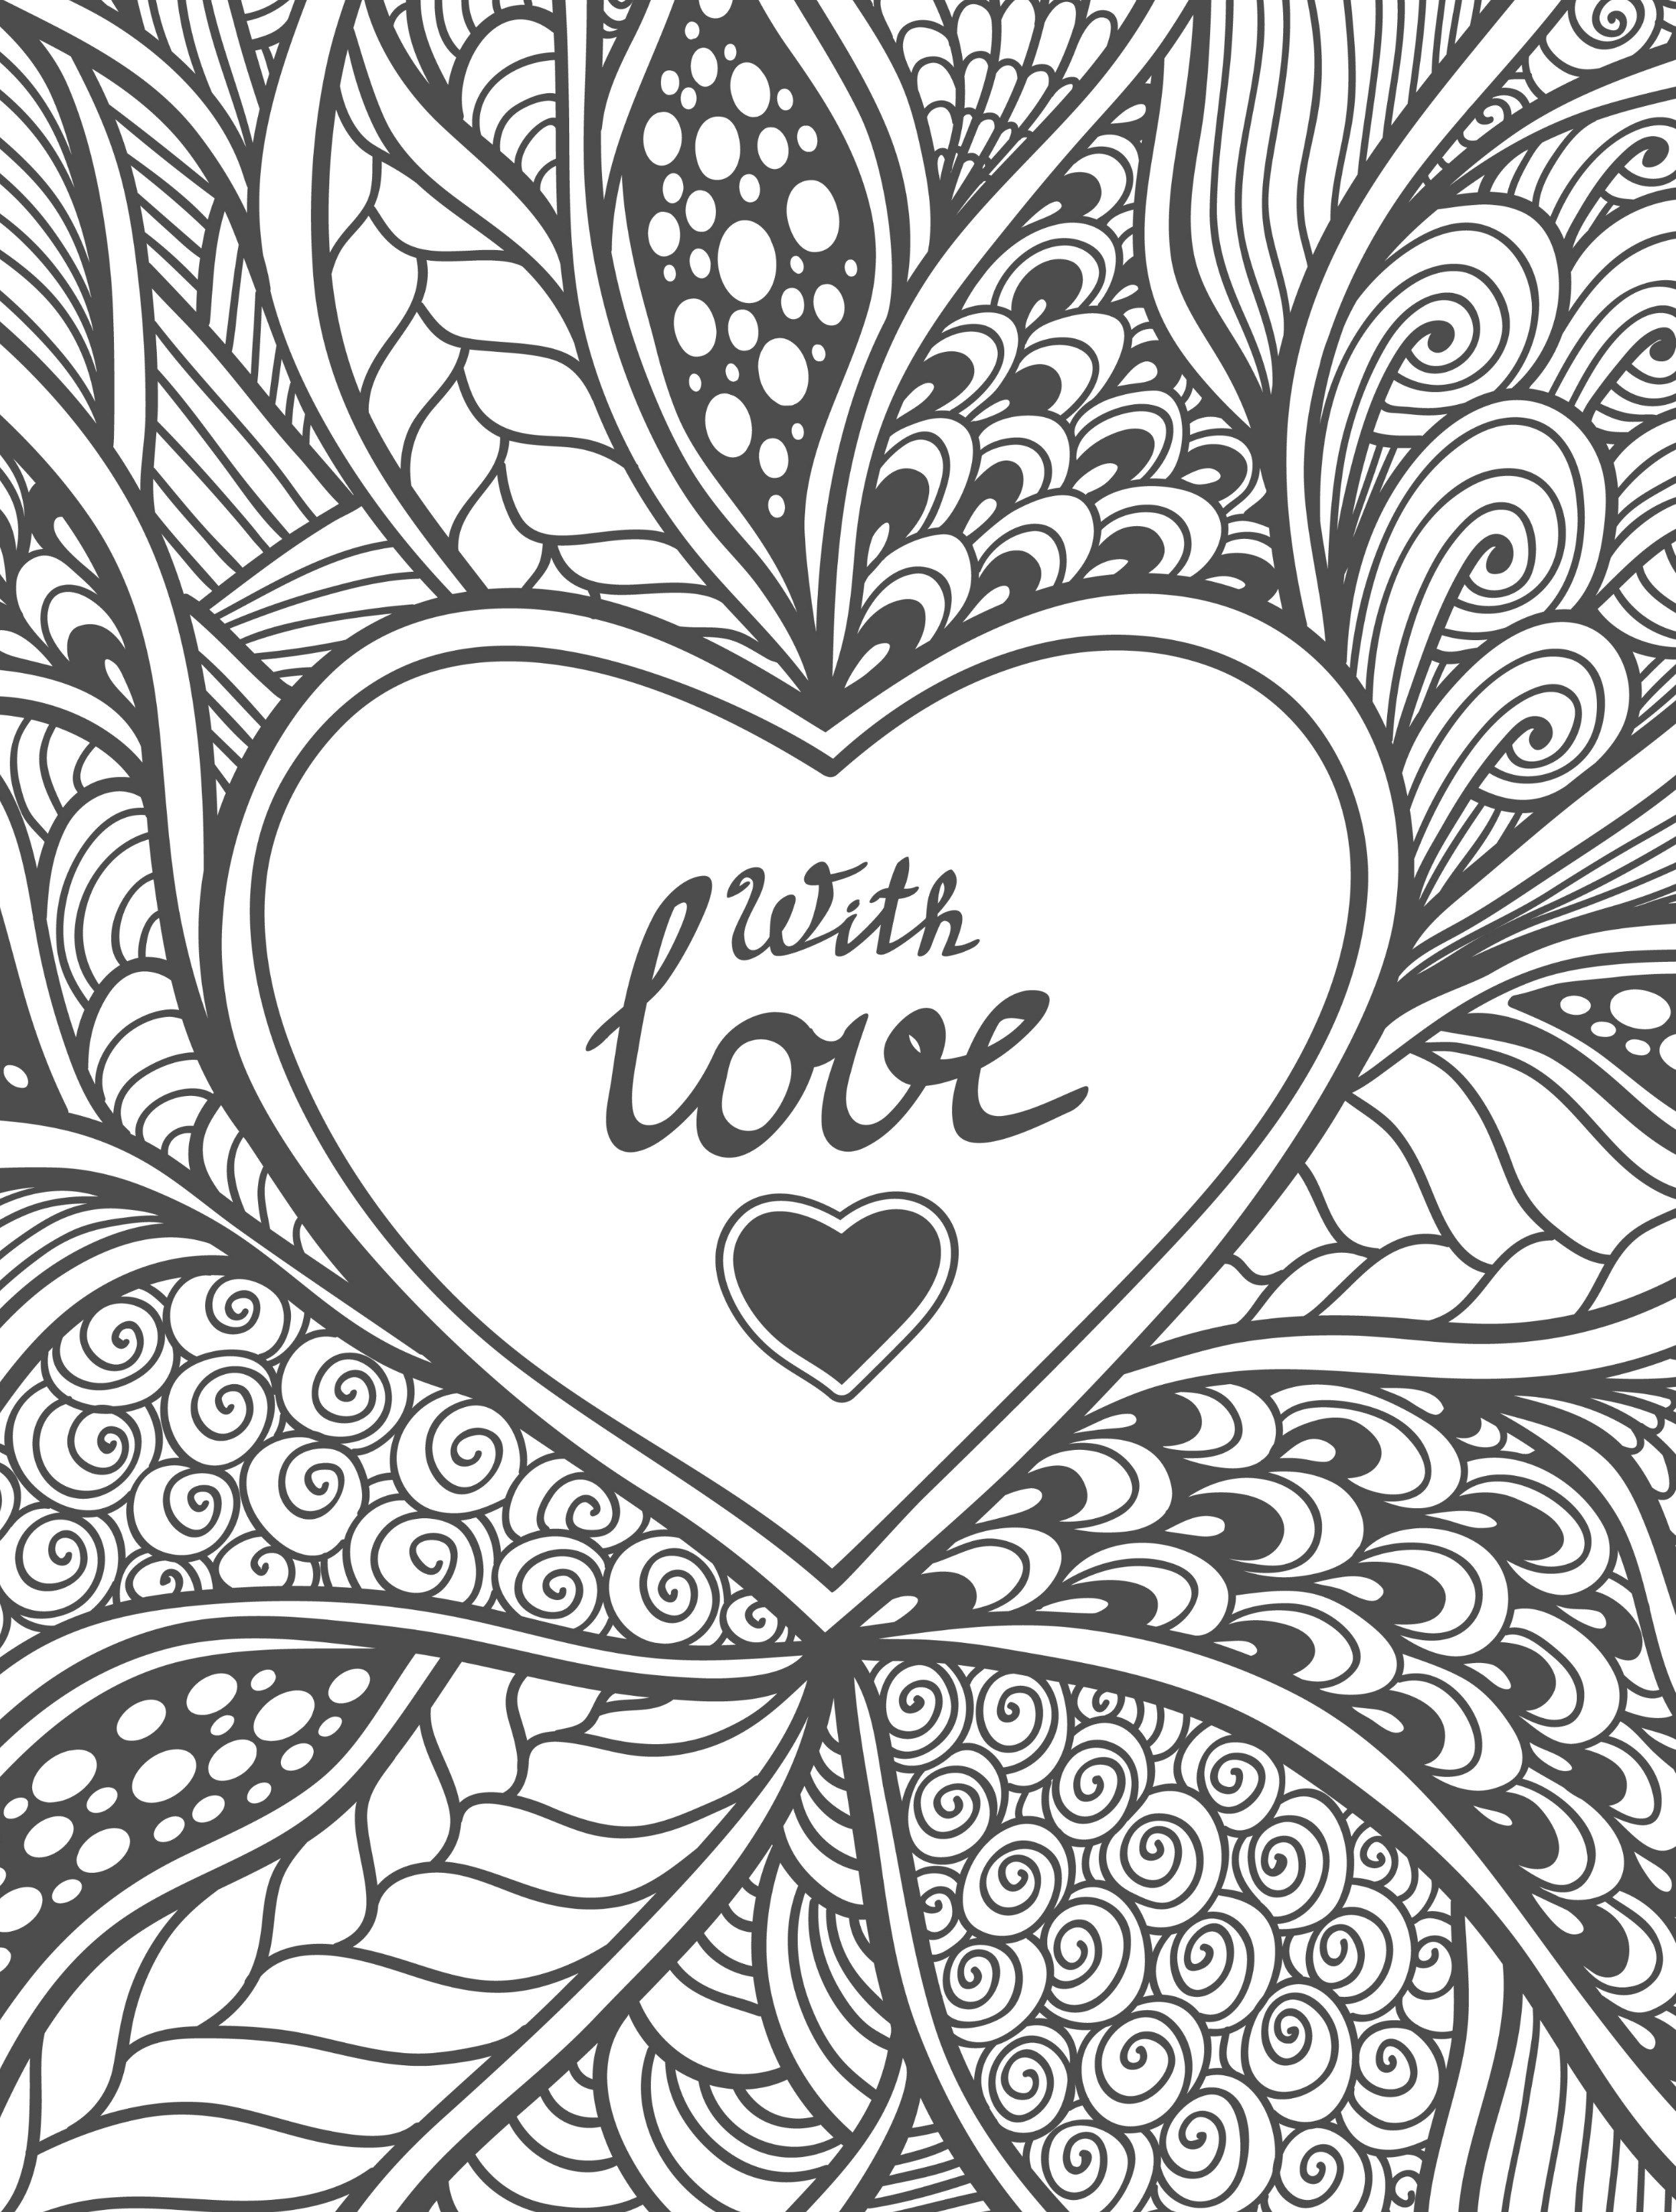 Heart Valentines Abstract Doodle Zentangle Paisley Coloring Pages Colouring Adult Detailed Advanced Printable Kleuren Voor Volwassenen Coloriage Pour Adulte